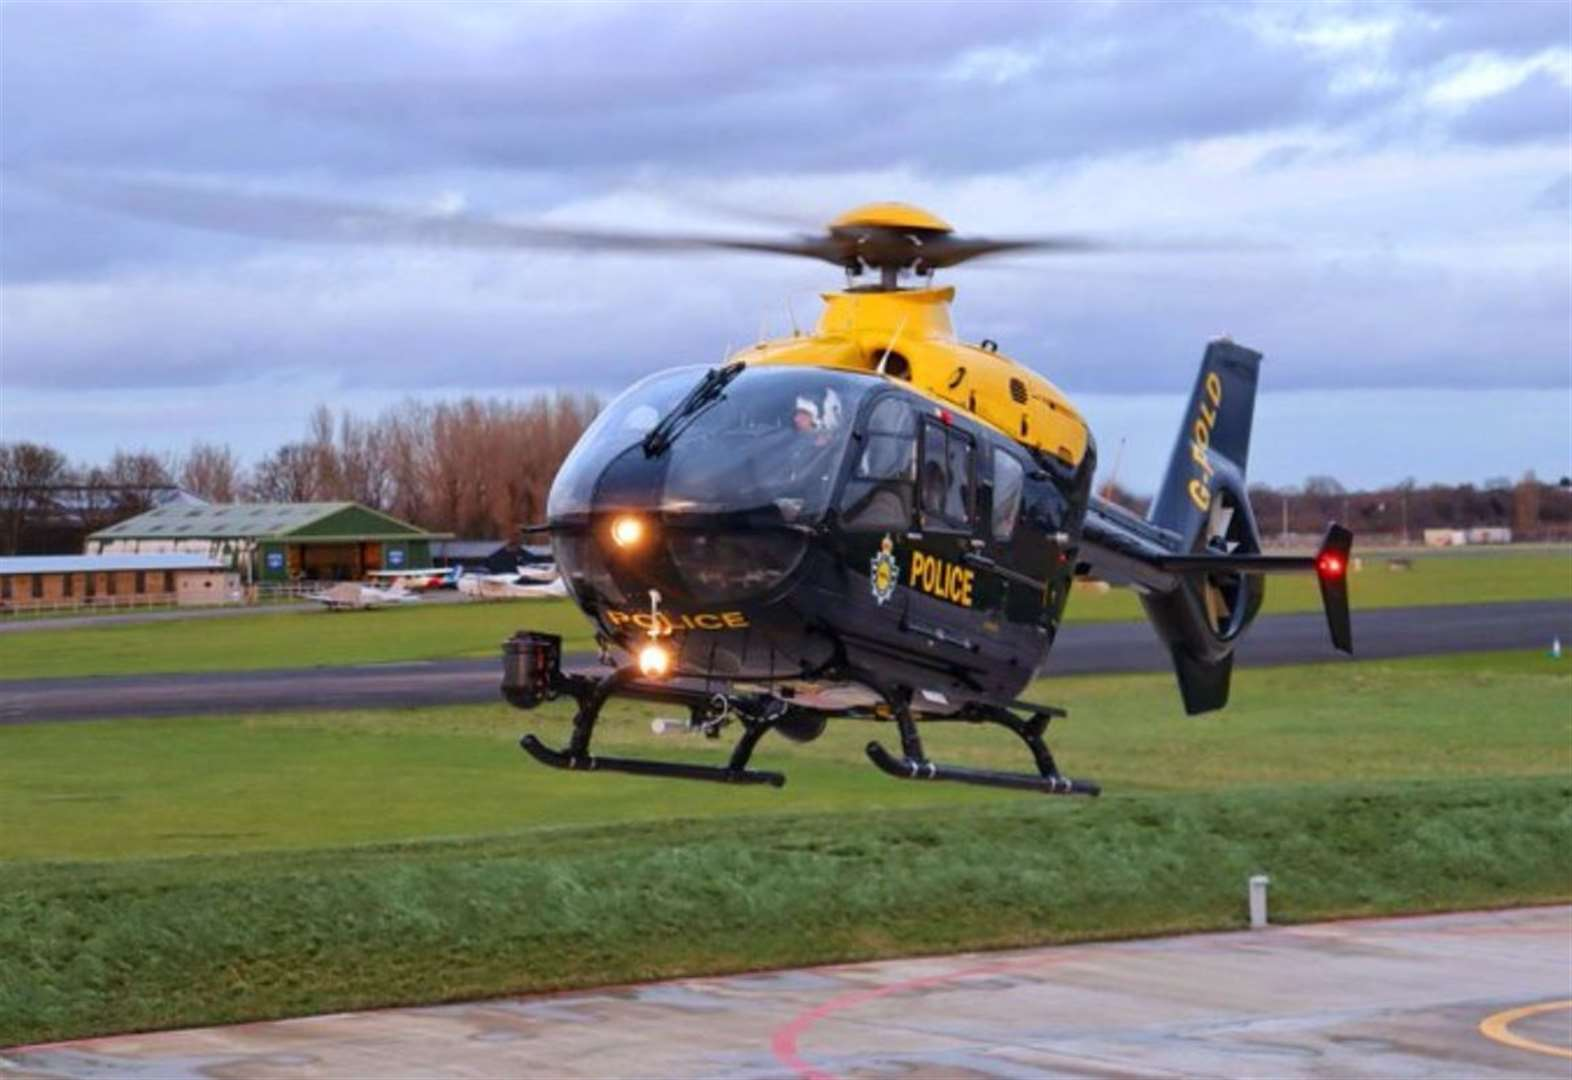 Chopper launched after police-chase crash